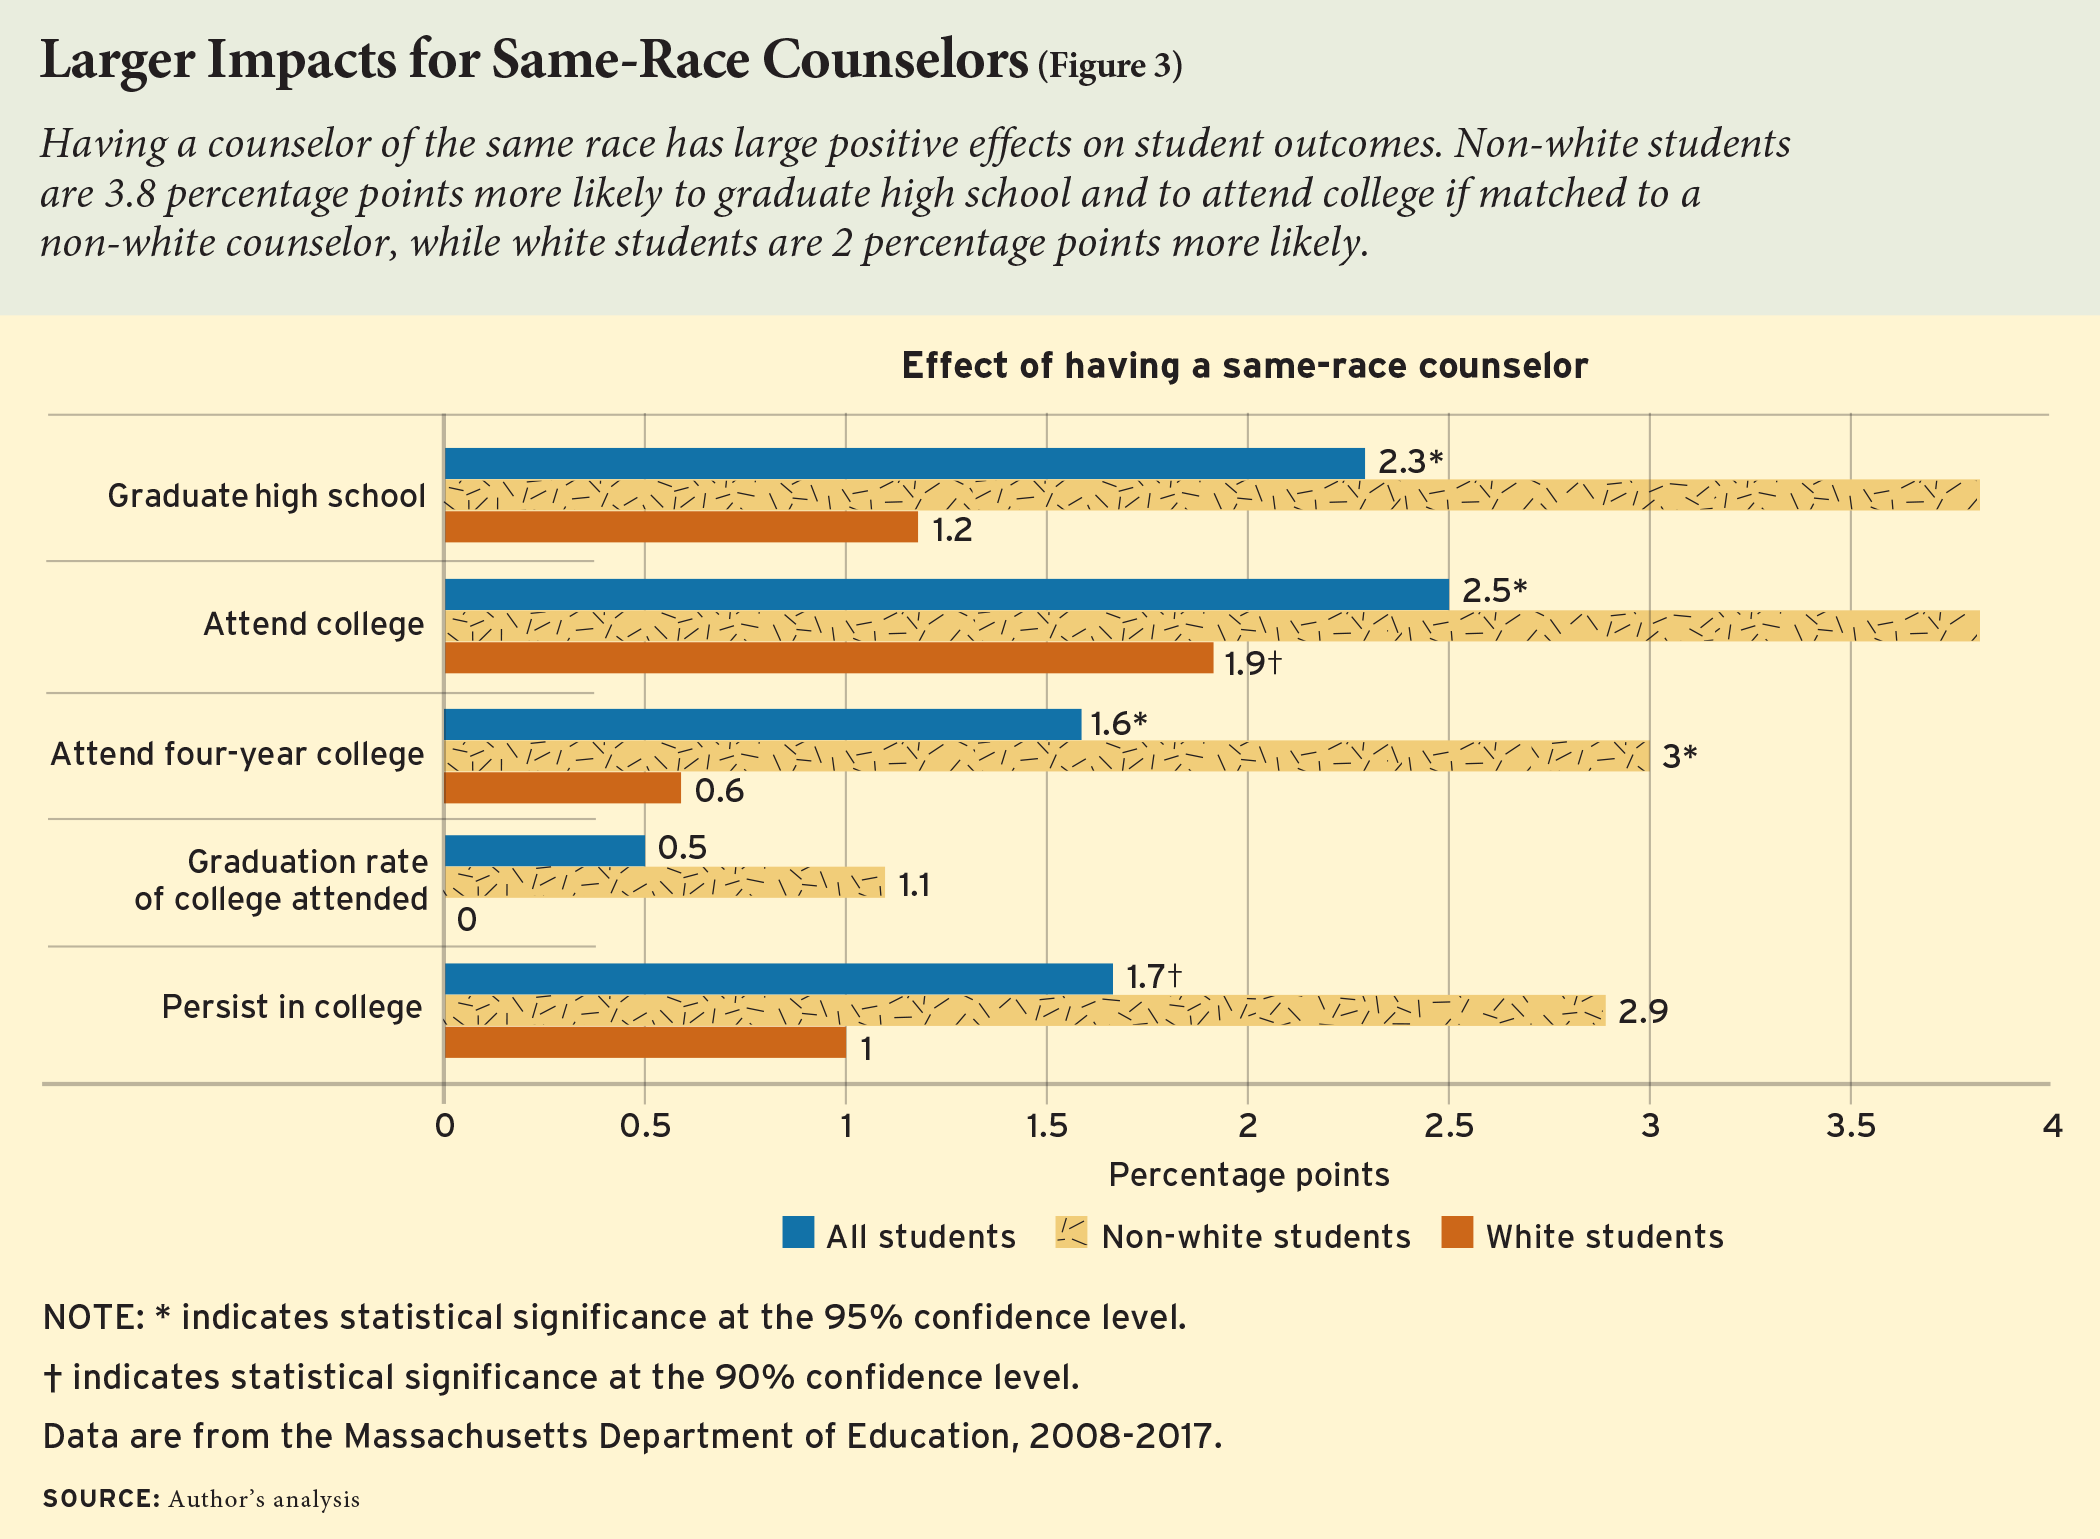 Larger Impacts for Same-Race Counselors (Figure 3)